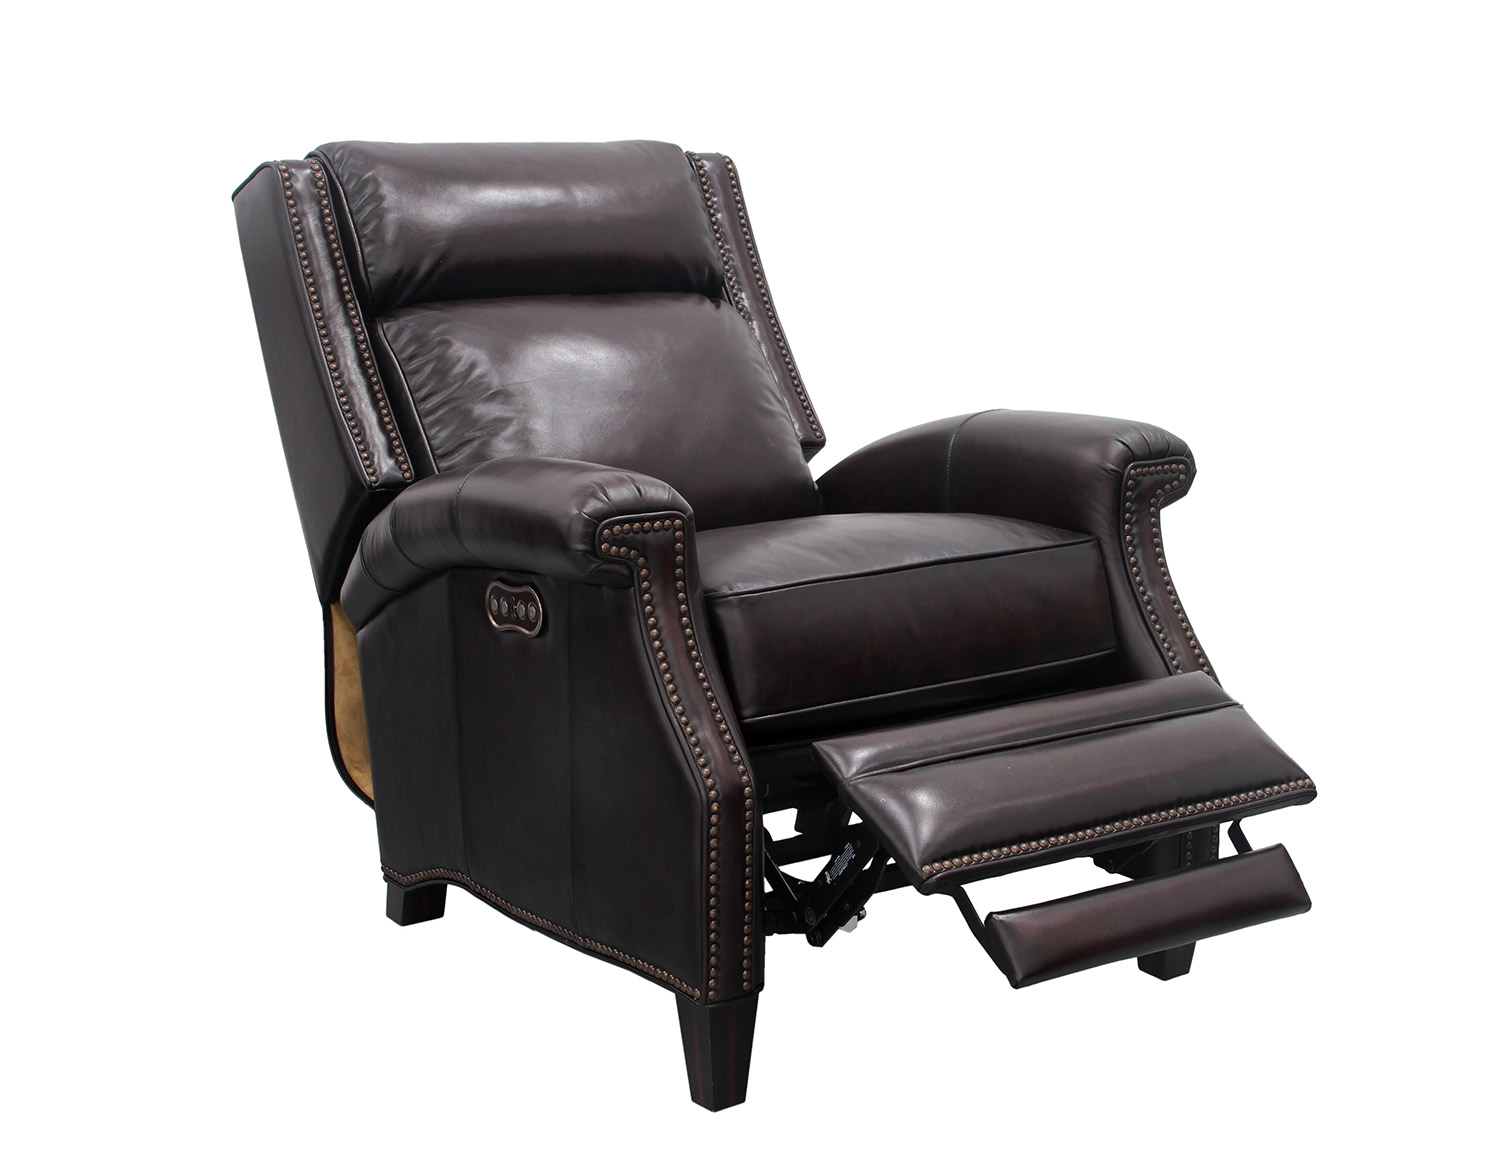 Barcalounger Barrett Power Recliner Chair with Power Headrest - Stetson Coffee/All Leather